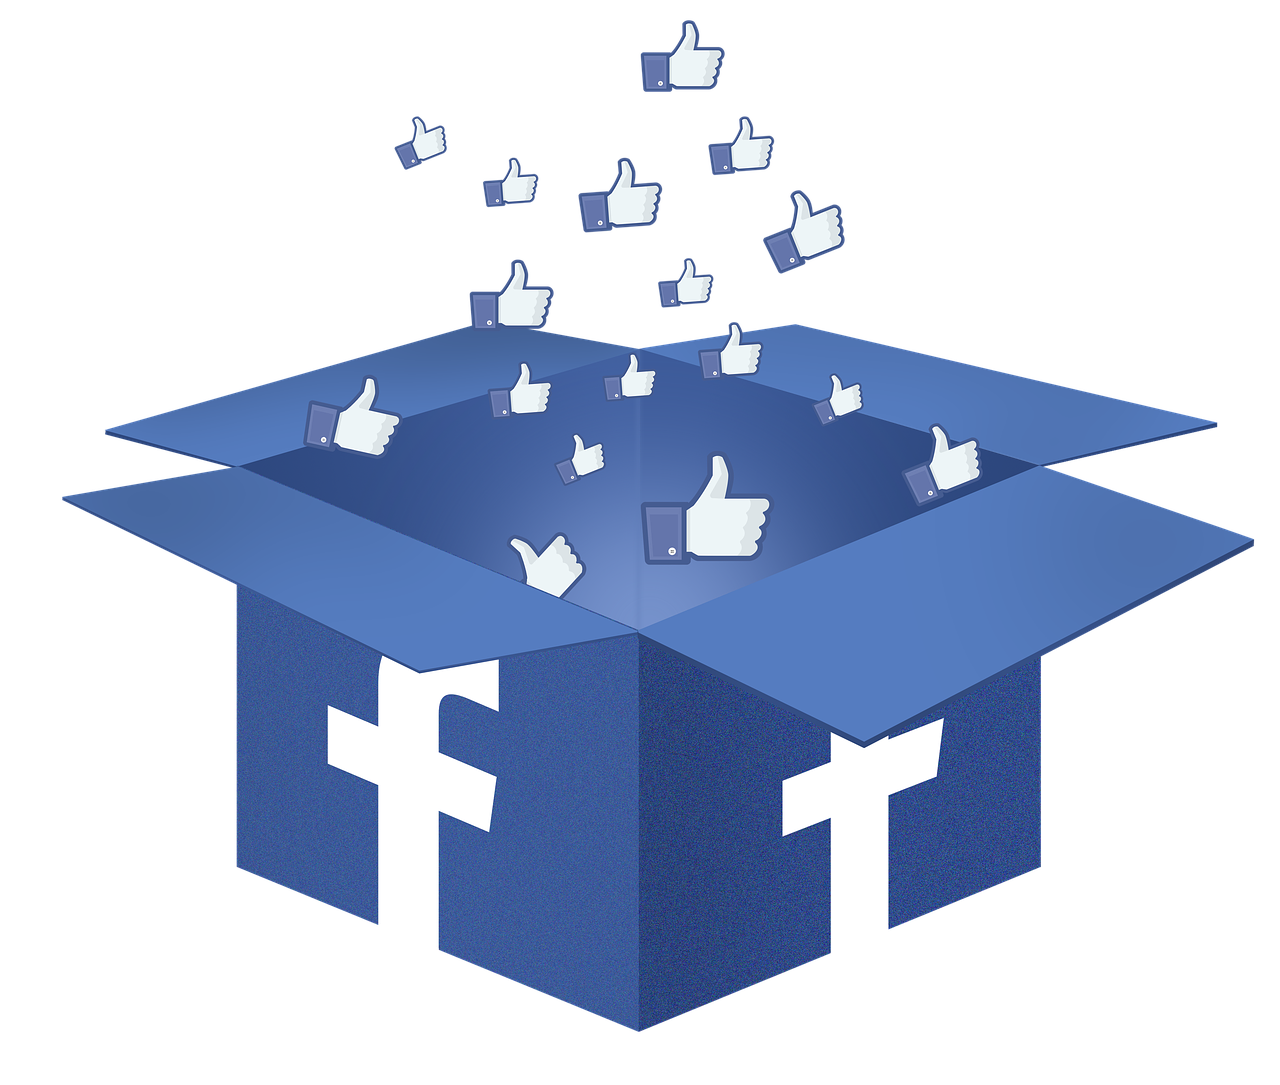 Facebook Box Like I - Free image on Pixabay